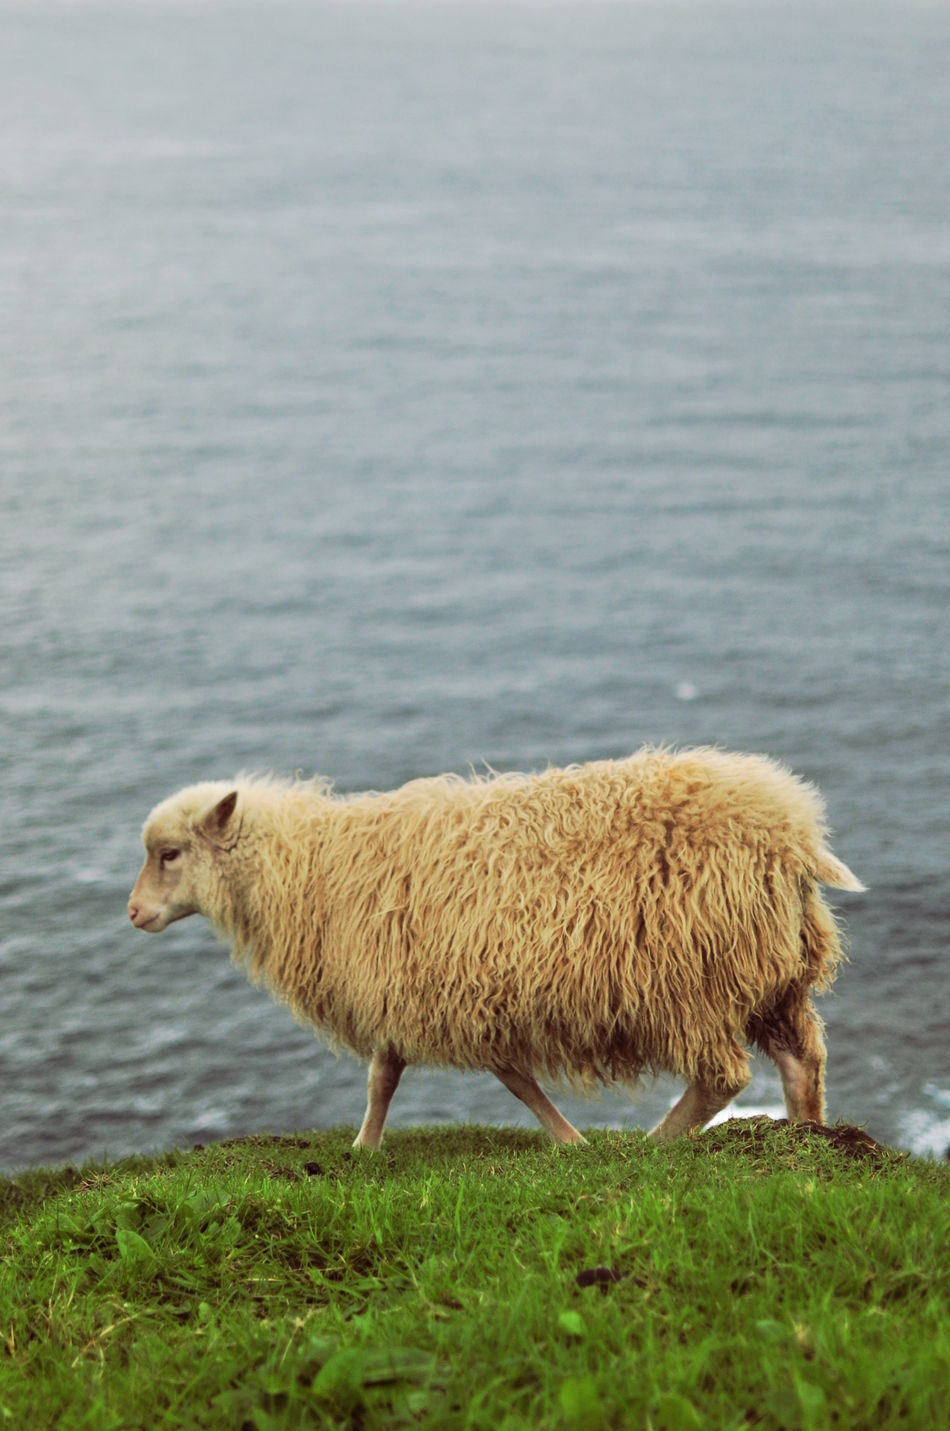 Animal Animal Themes Day Nature No People One Animal Profile Sea Sheep Side View Water Zoology